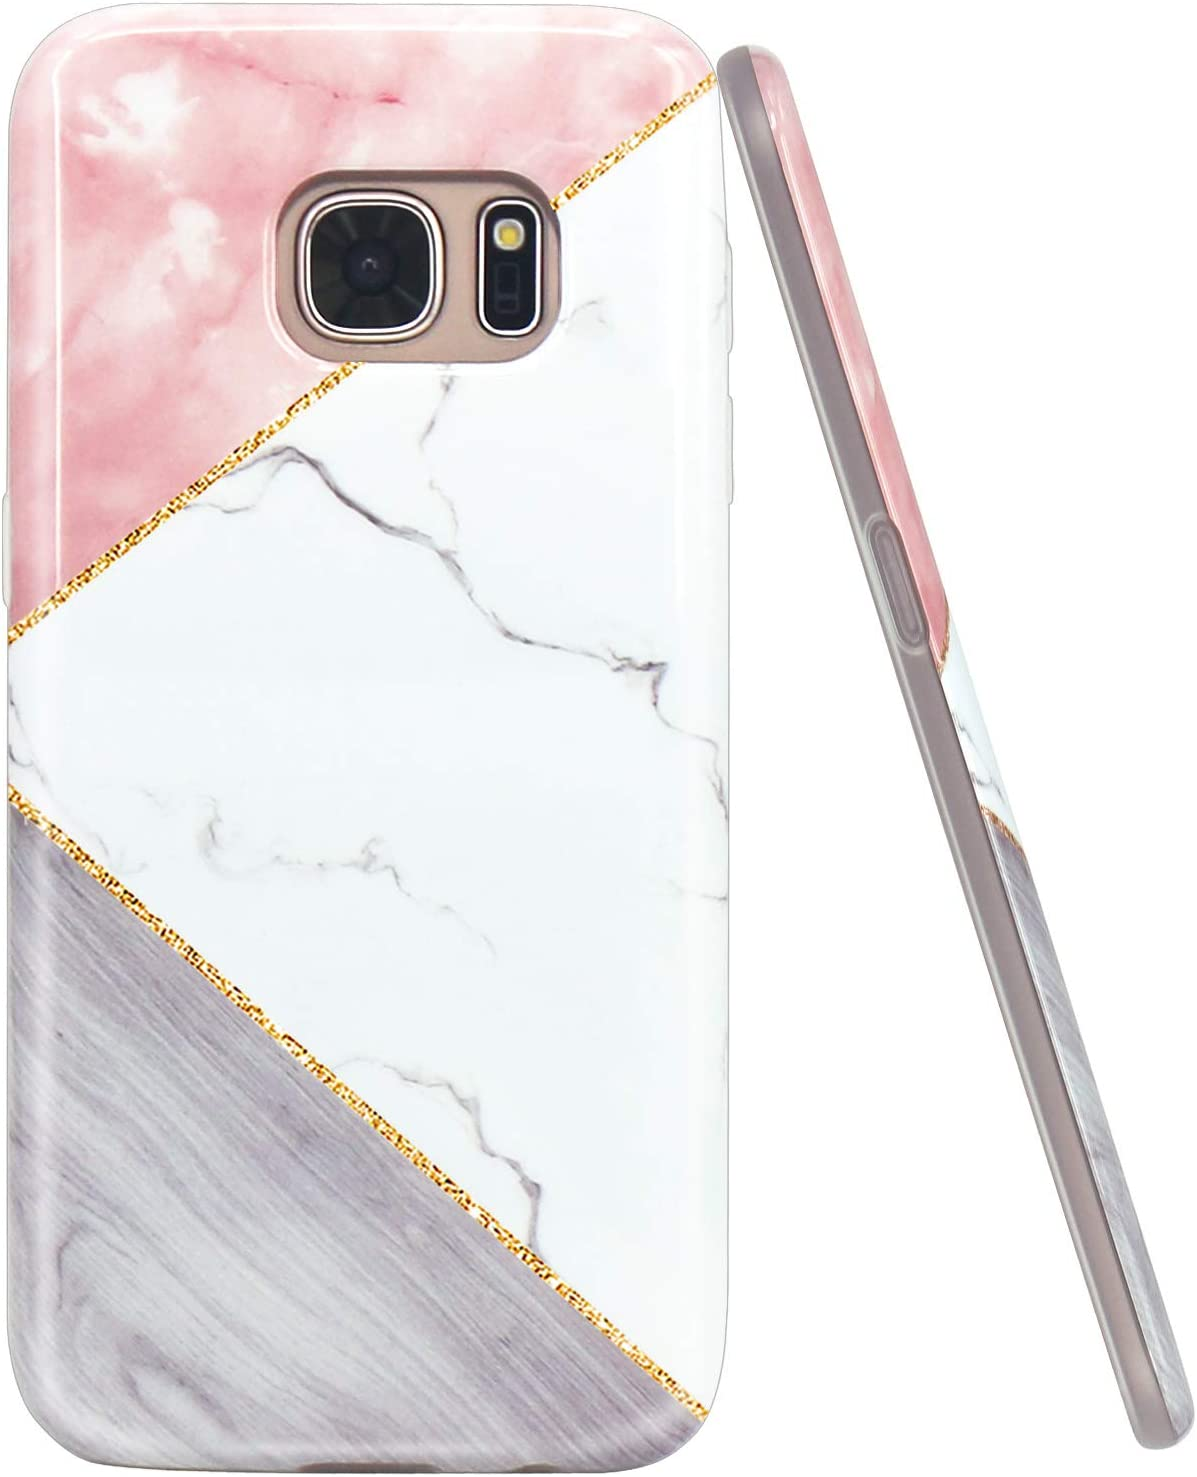 JAHOLAN Galaxy S7 Case Geometric Pink White Marble Design Slim Flexible Bumper Glossy TPU Soft Rubber Silicone Cover Phone Case for Samsung Galaxy S7